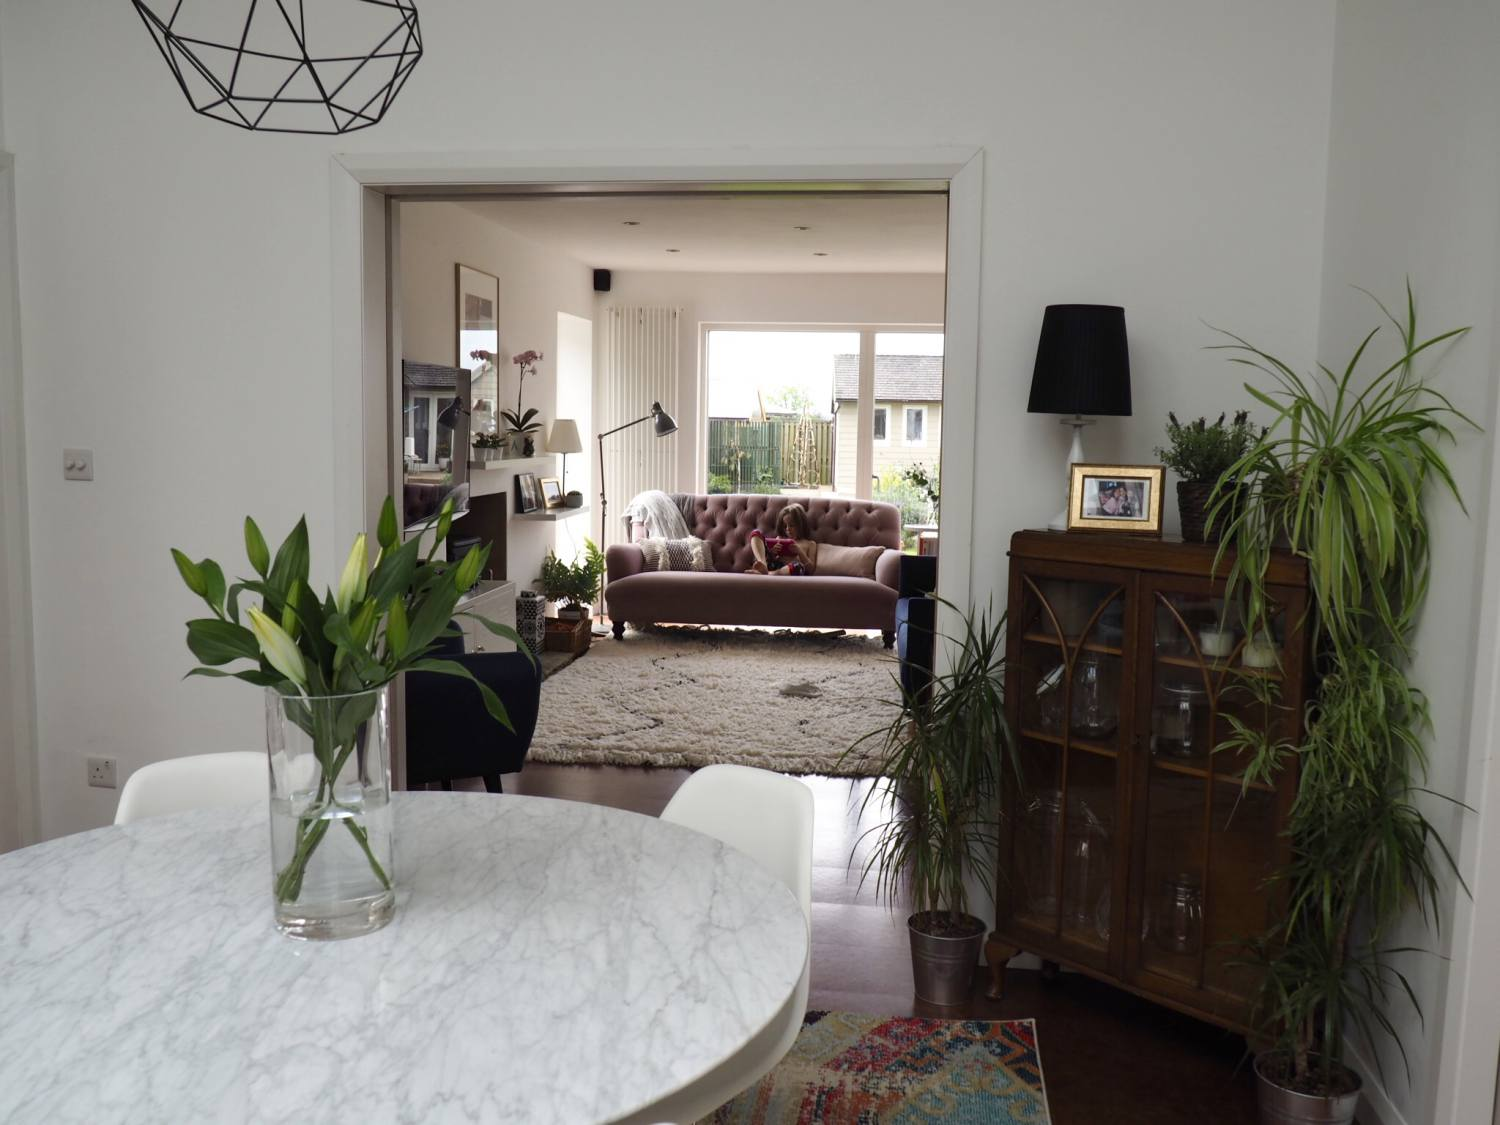 My House Tour - living space